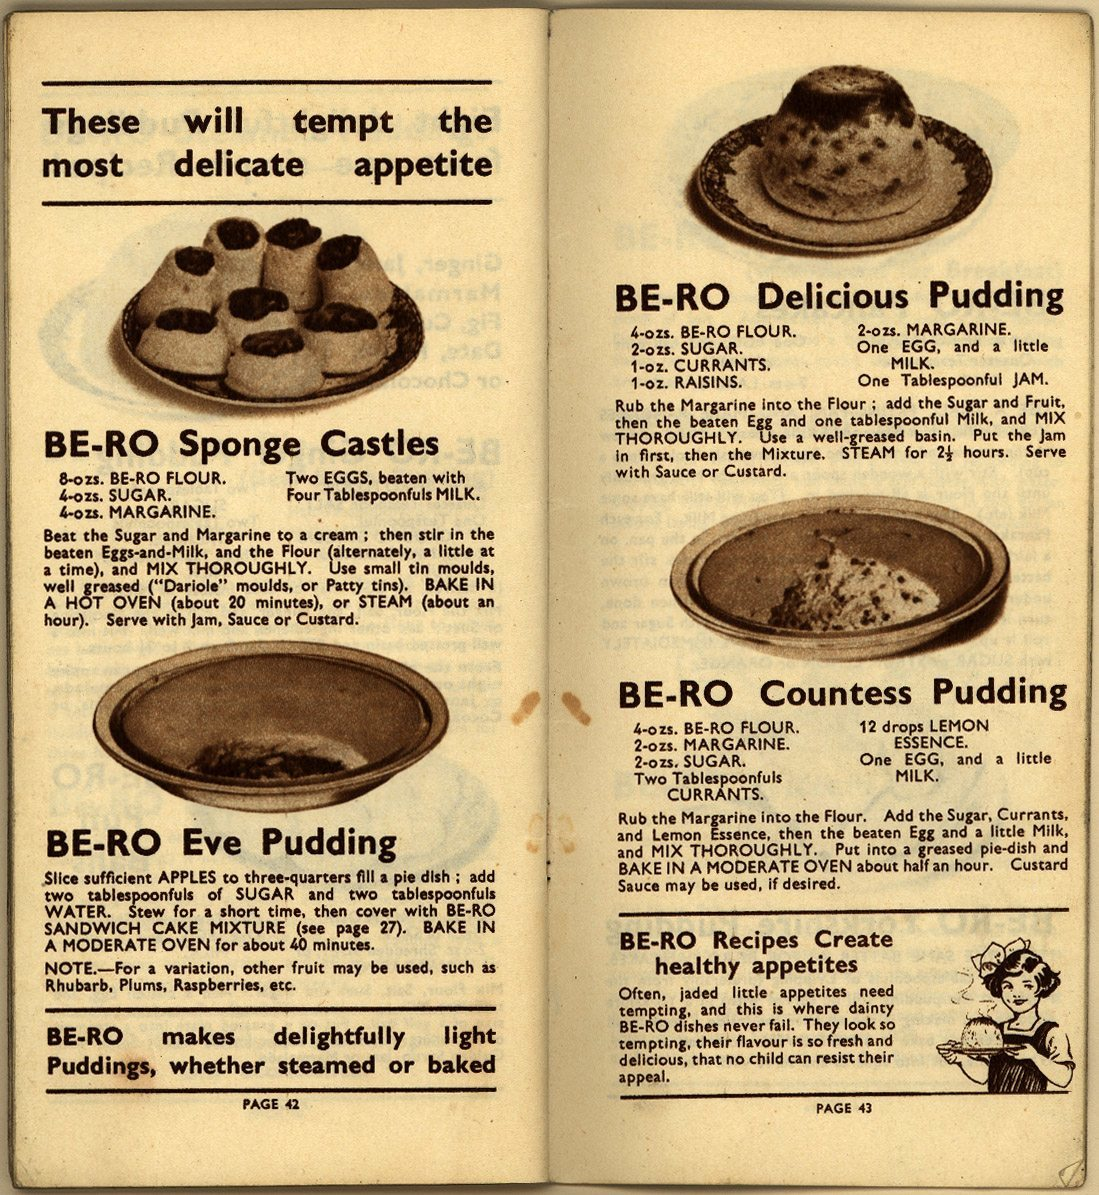 Be-Ro Home Recipes: Scones, Cakes, Pastry, Puddings - A 1923 Cookbook Primer - Flashbak